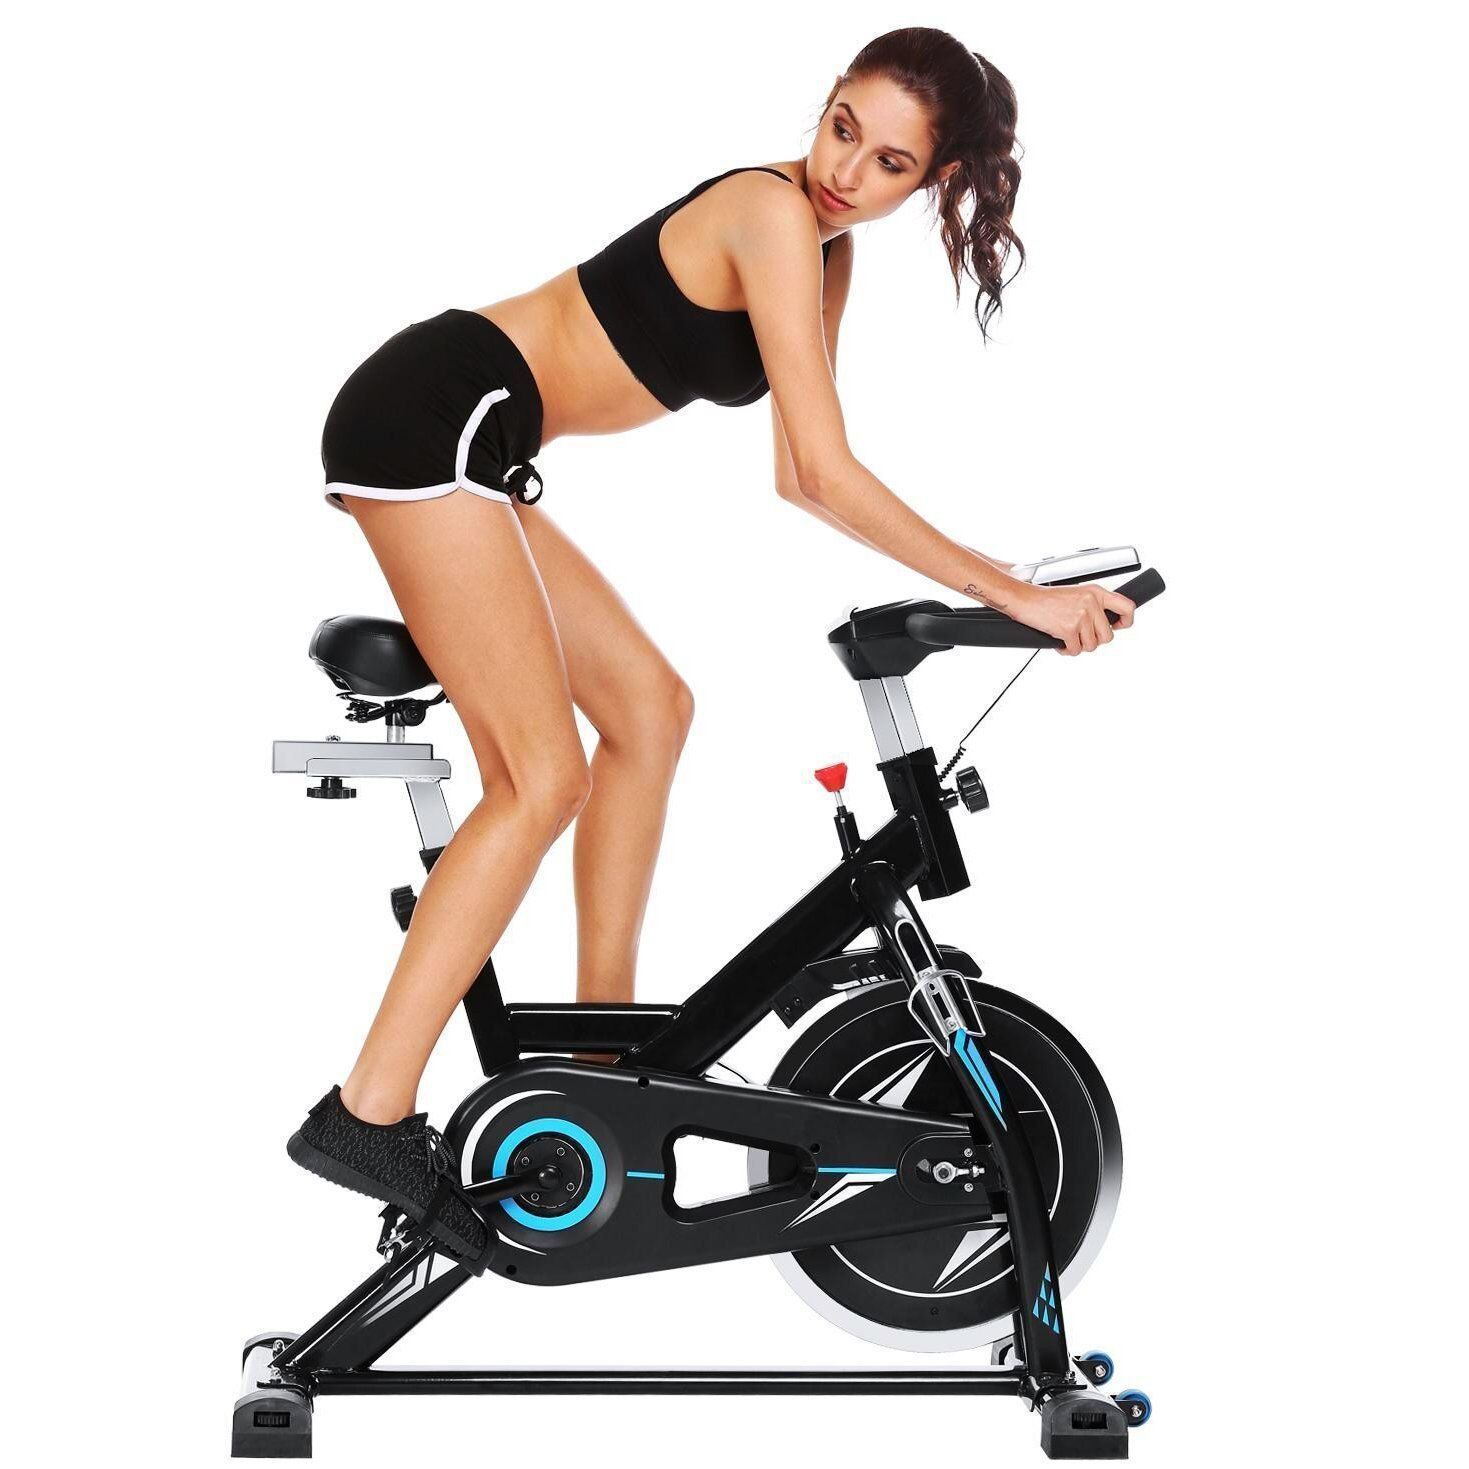 Stationary Exercise Bike Bicycle, Health Fitness Belt Drive Indoor Resistance Exercise Cycling Cycle Bike Exercise Equipment Machine Workout for Home Office Gym